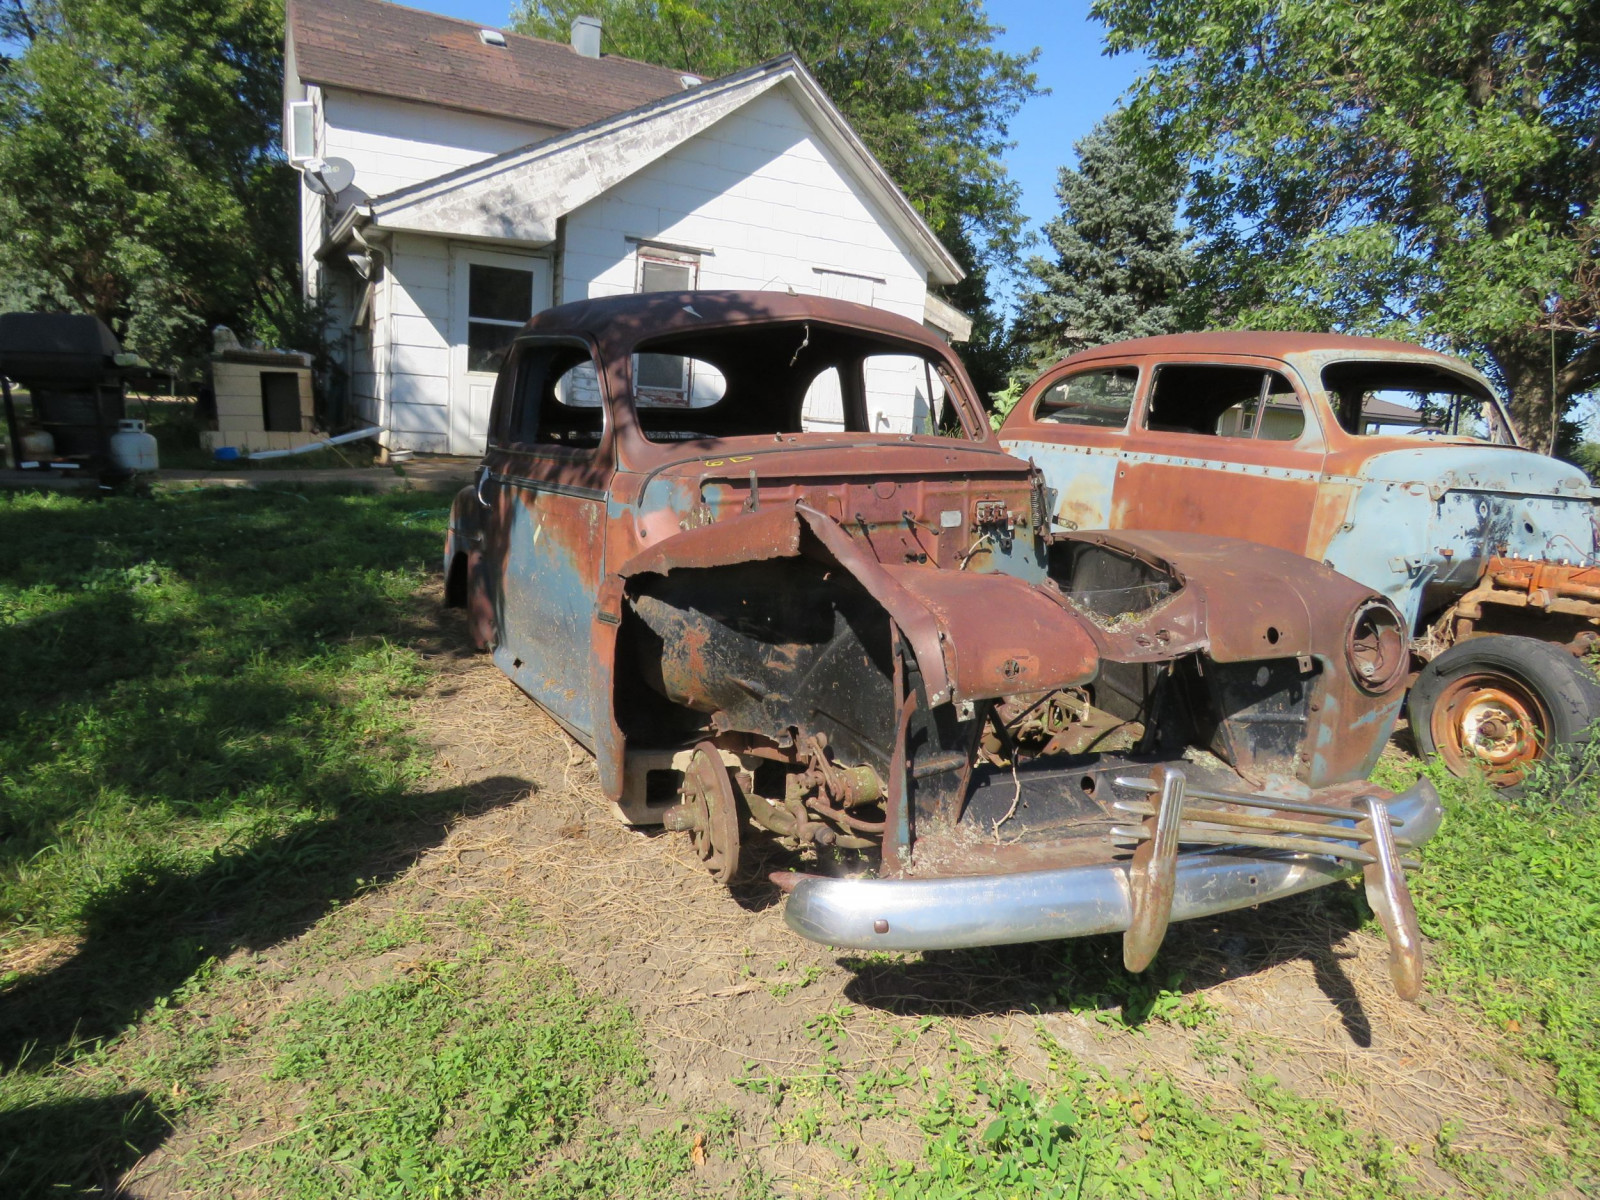 1946 Ford 2dr Sedan for Project or Parts - Image 1